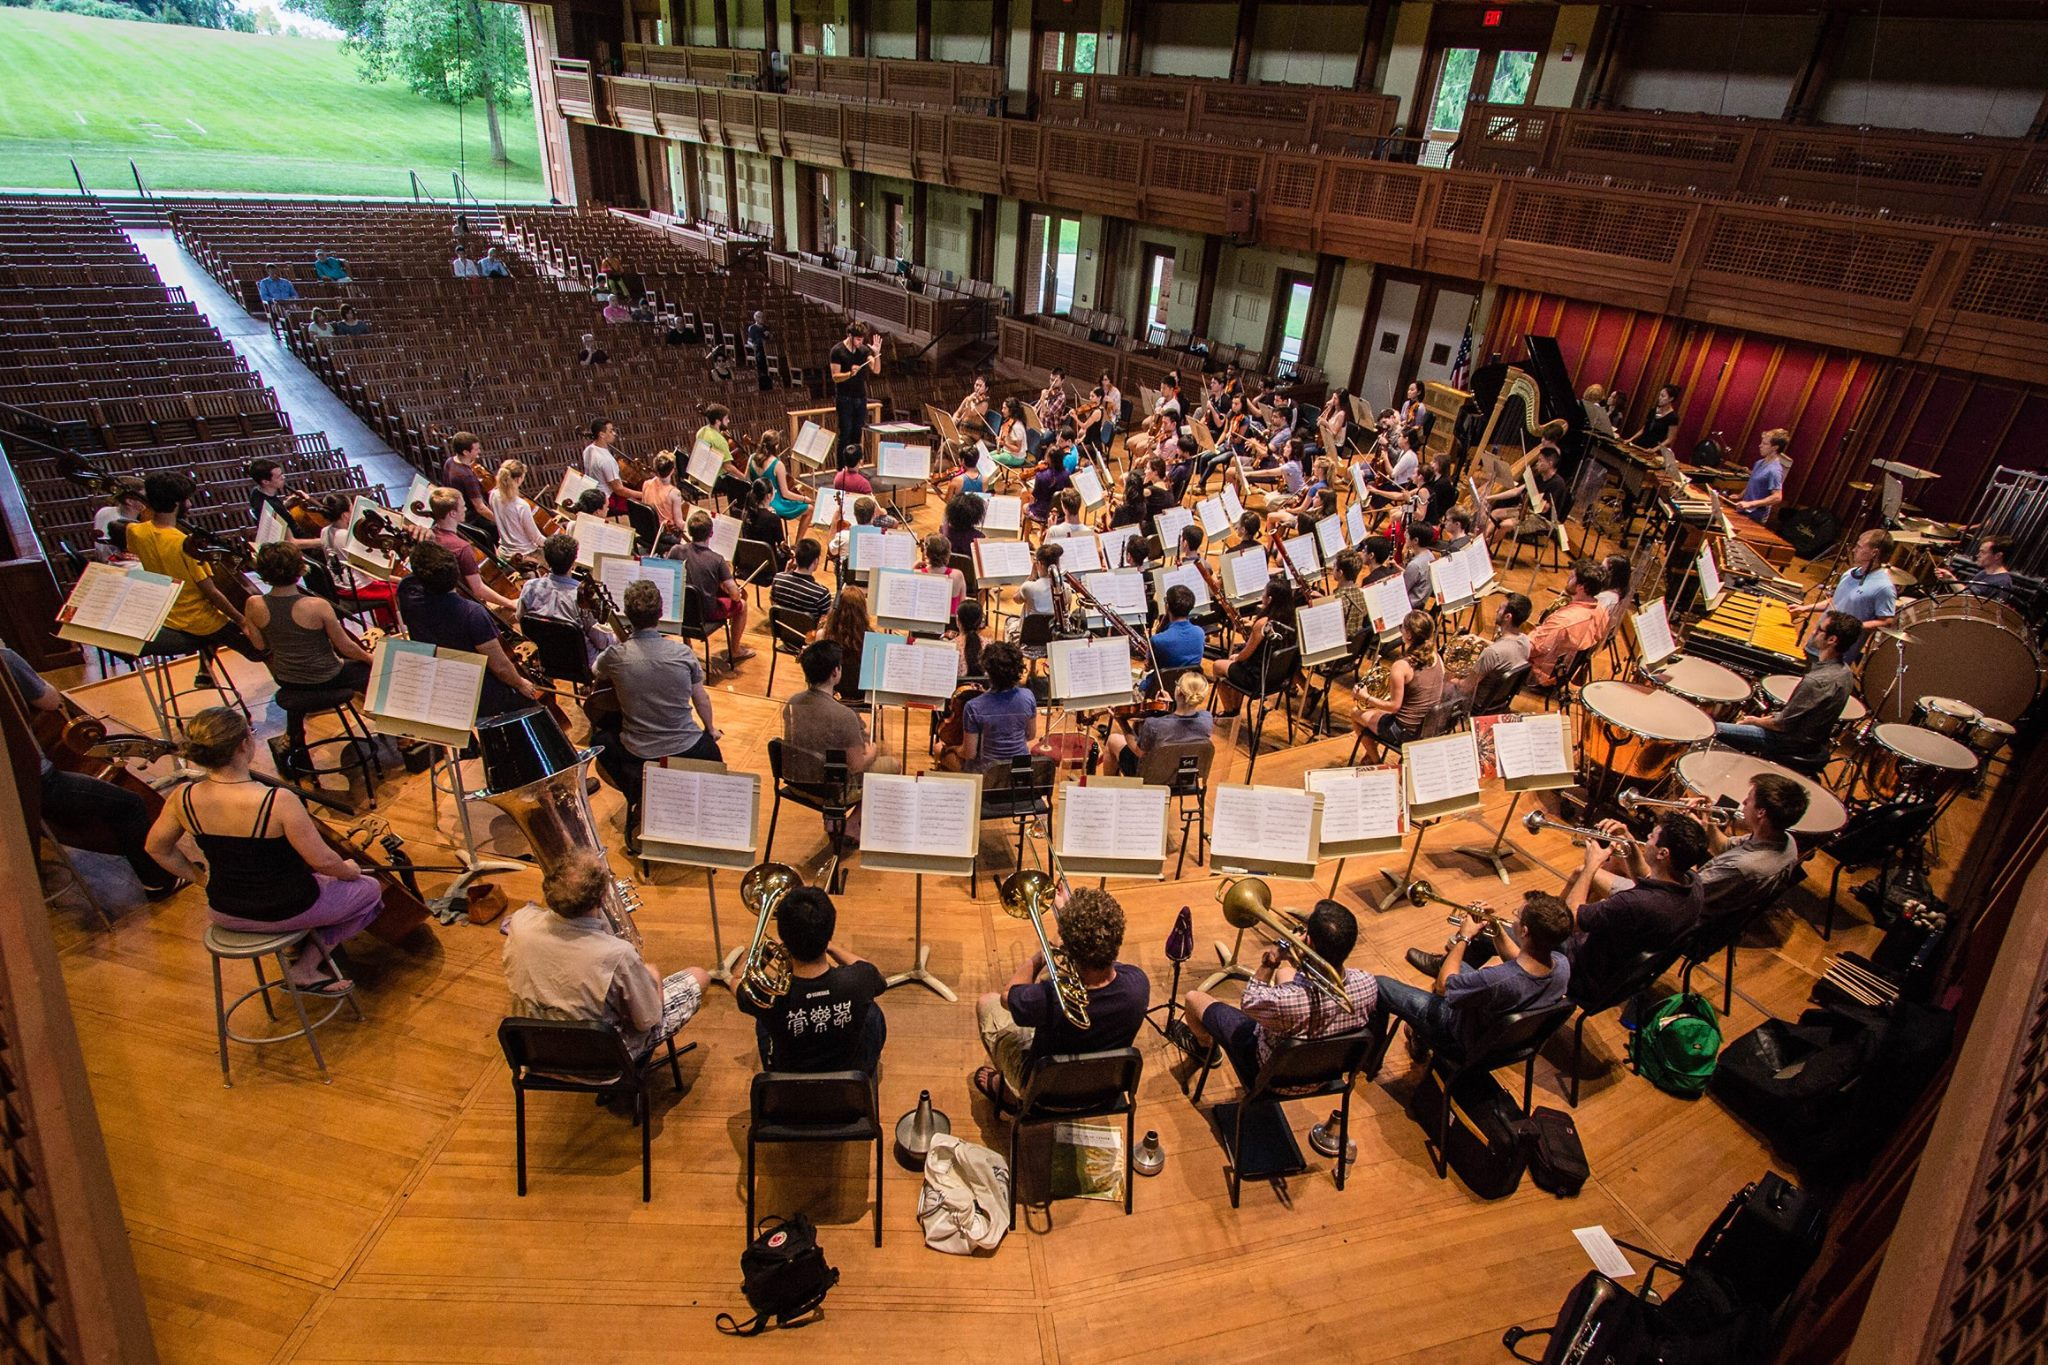 The Tanglewood Music Center Orchestra in rehearsal for the first Festival Of Contemporary Music Orchestra concert in Seji Ozawa Hall.